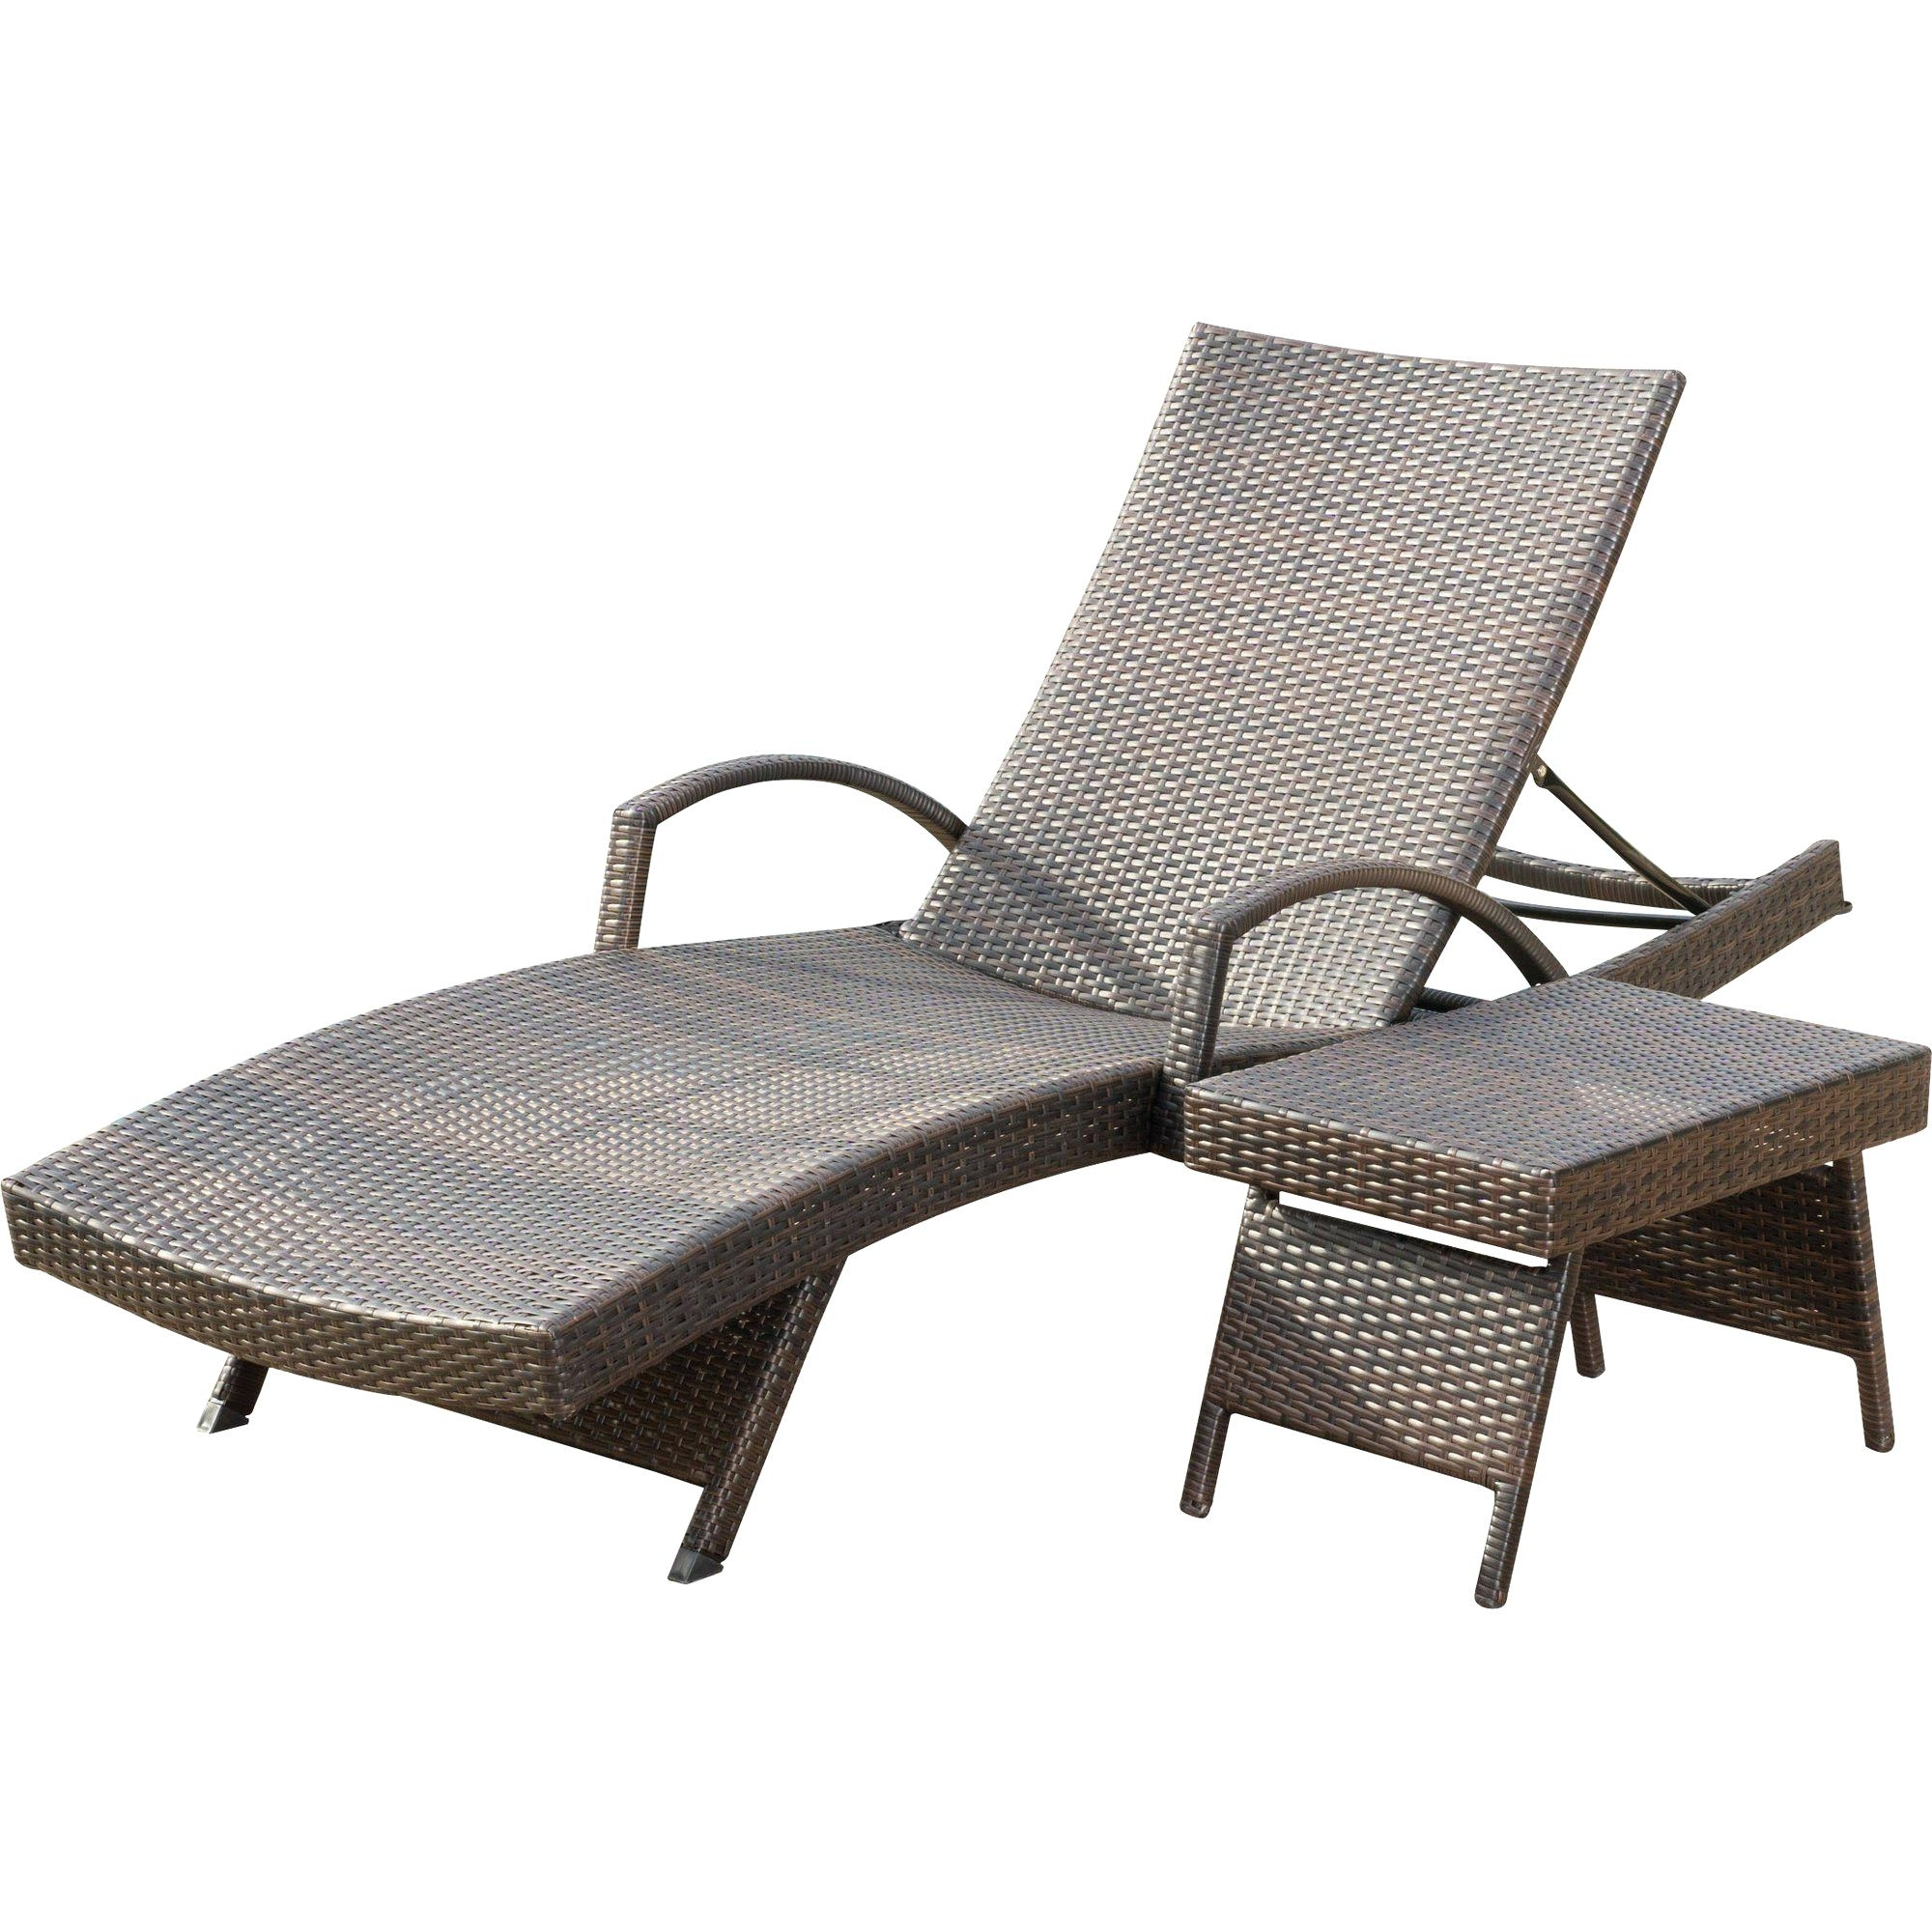 Eliana Outdoor Brown Wicker Chaise Lounge Chairs With 2017 Eliana Outdoor Brown Wicker Chaise Lounge Chairs (set Of 2 (Gallery 1 of 15)